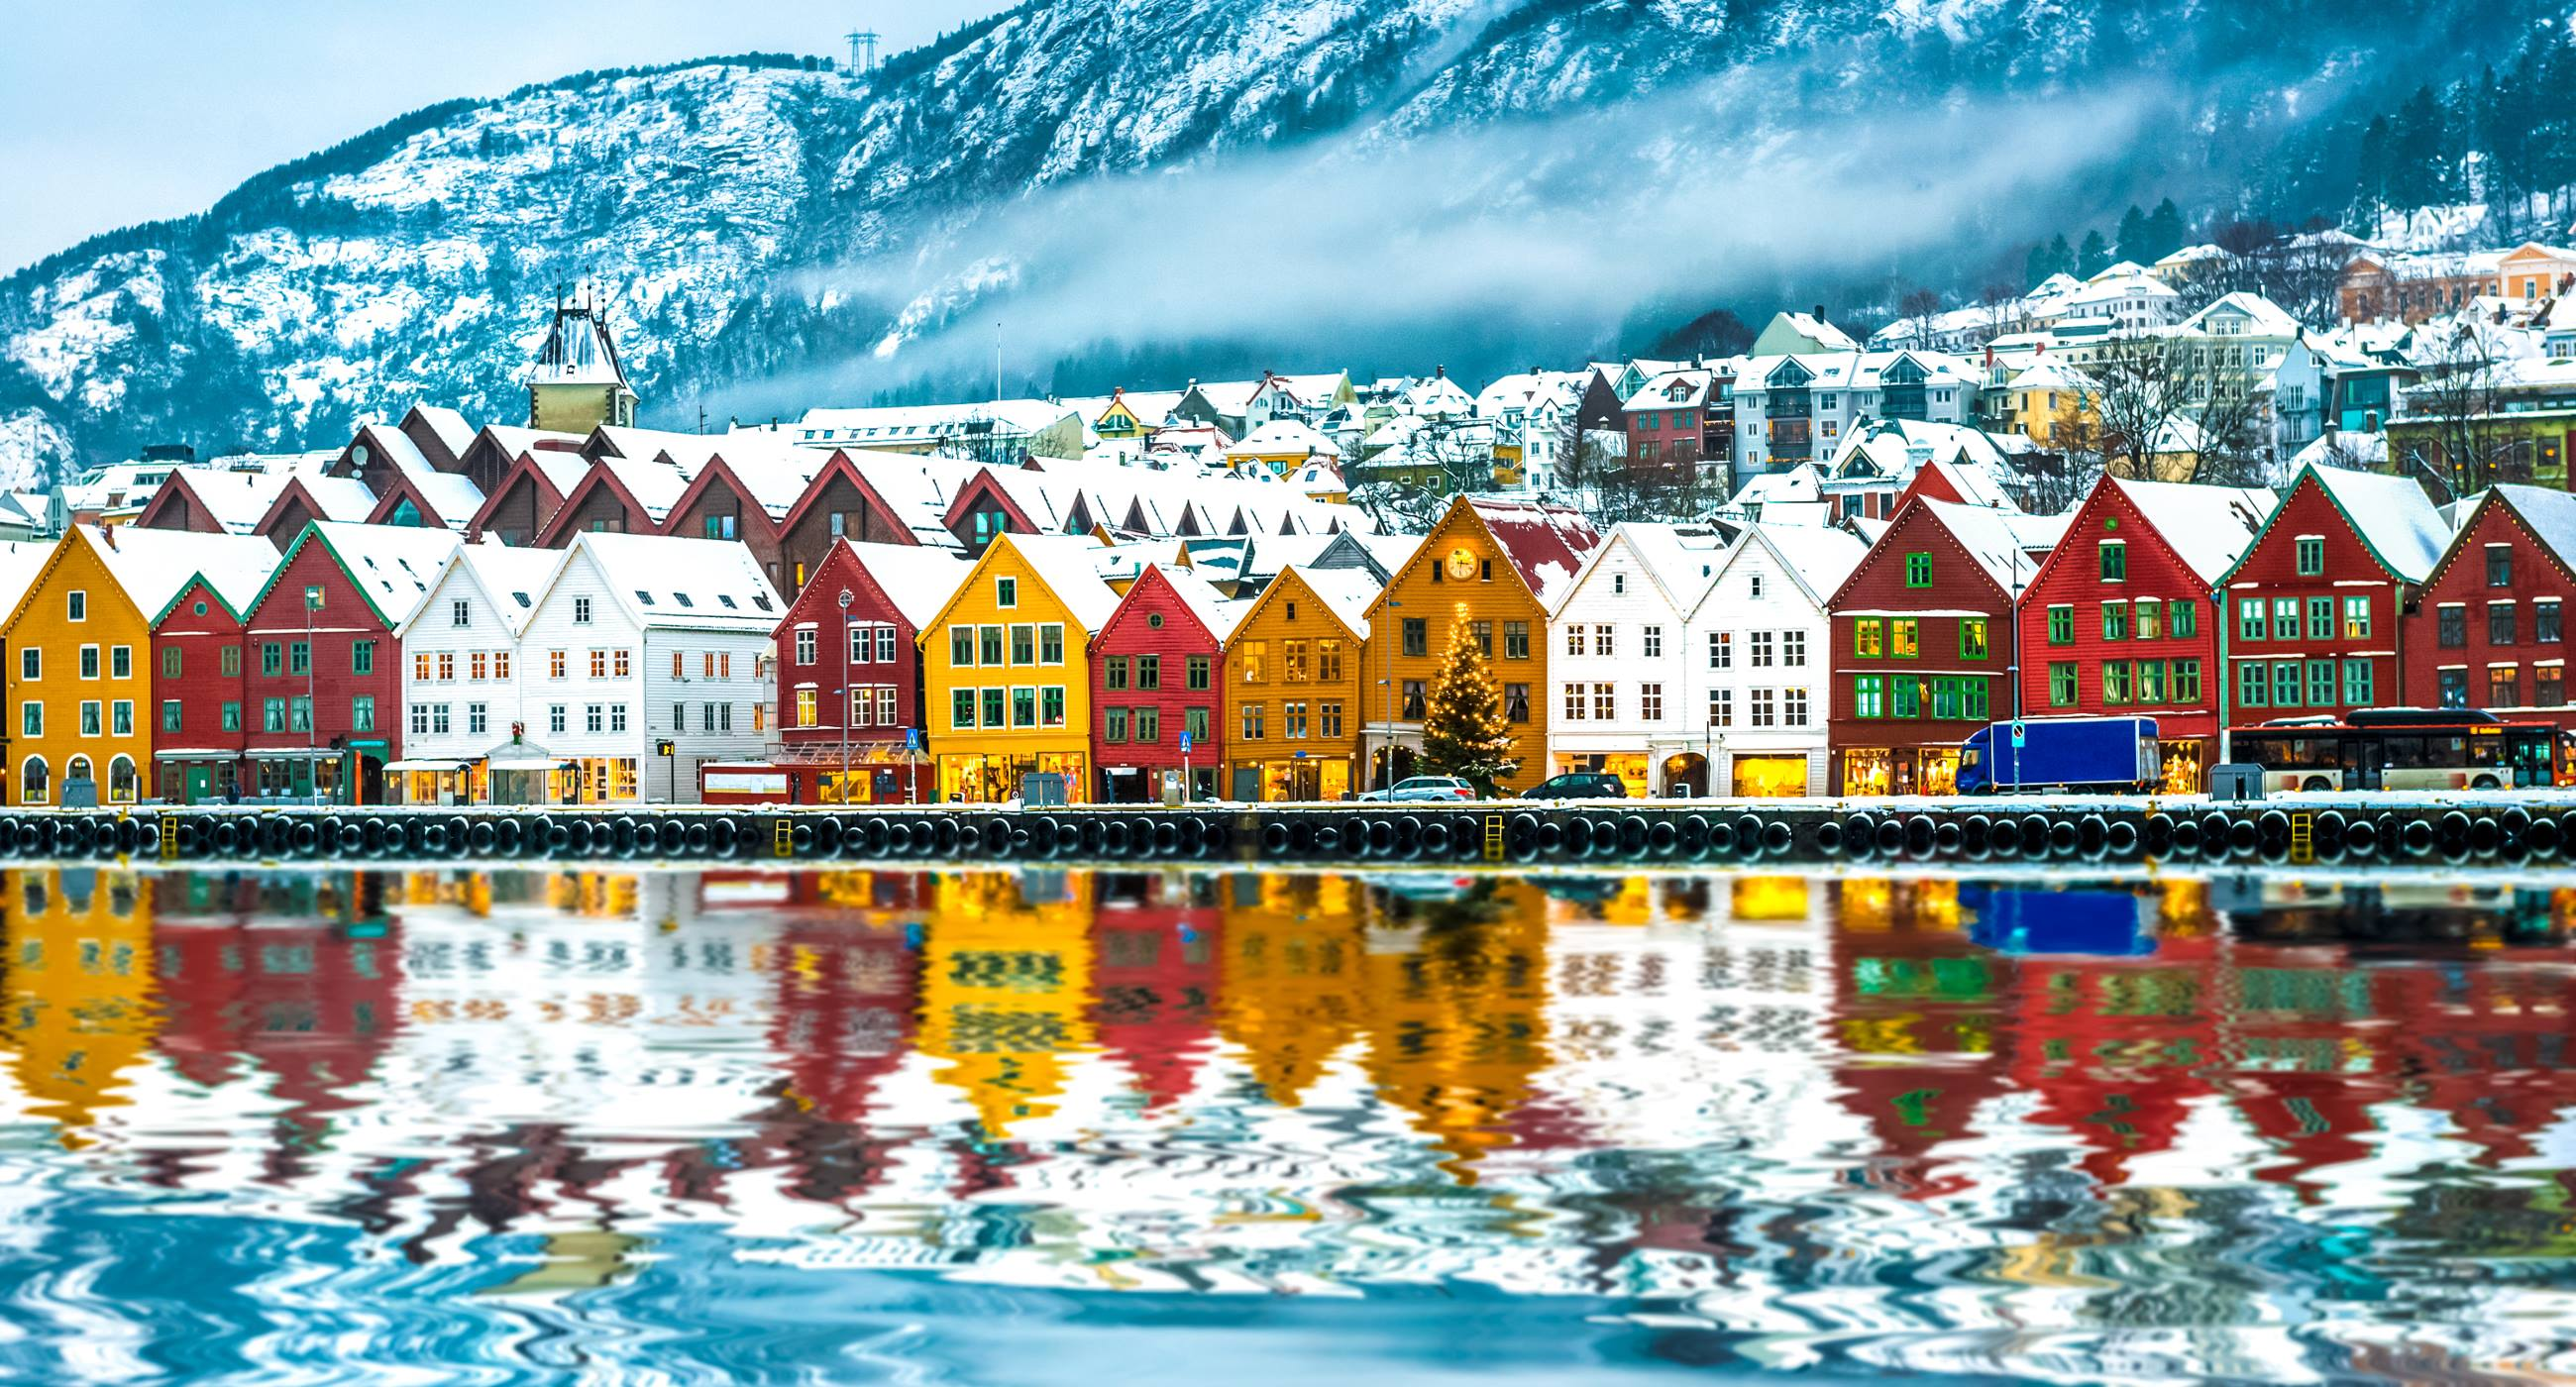 View-of-colourful-houses-on-the-waterside-of-Bergen